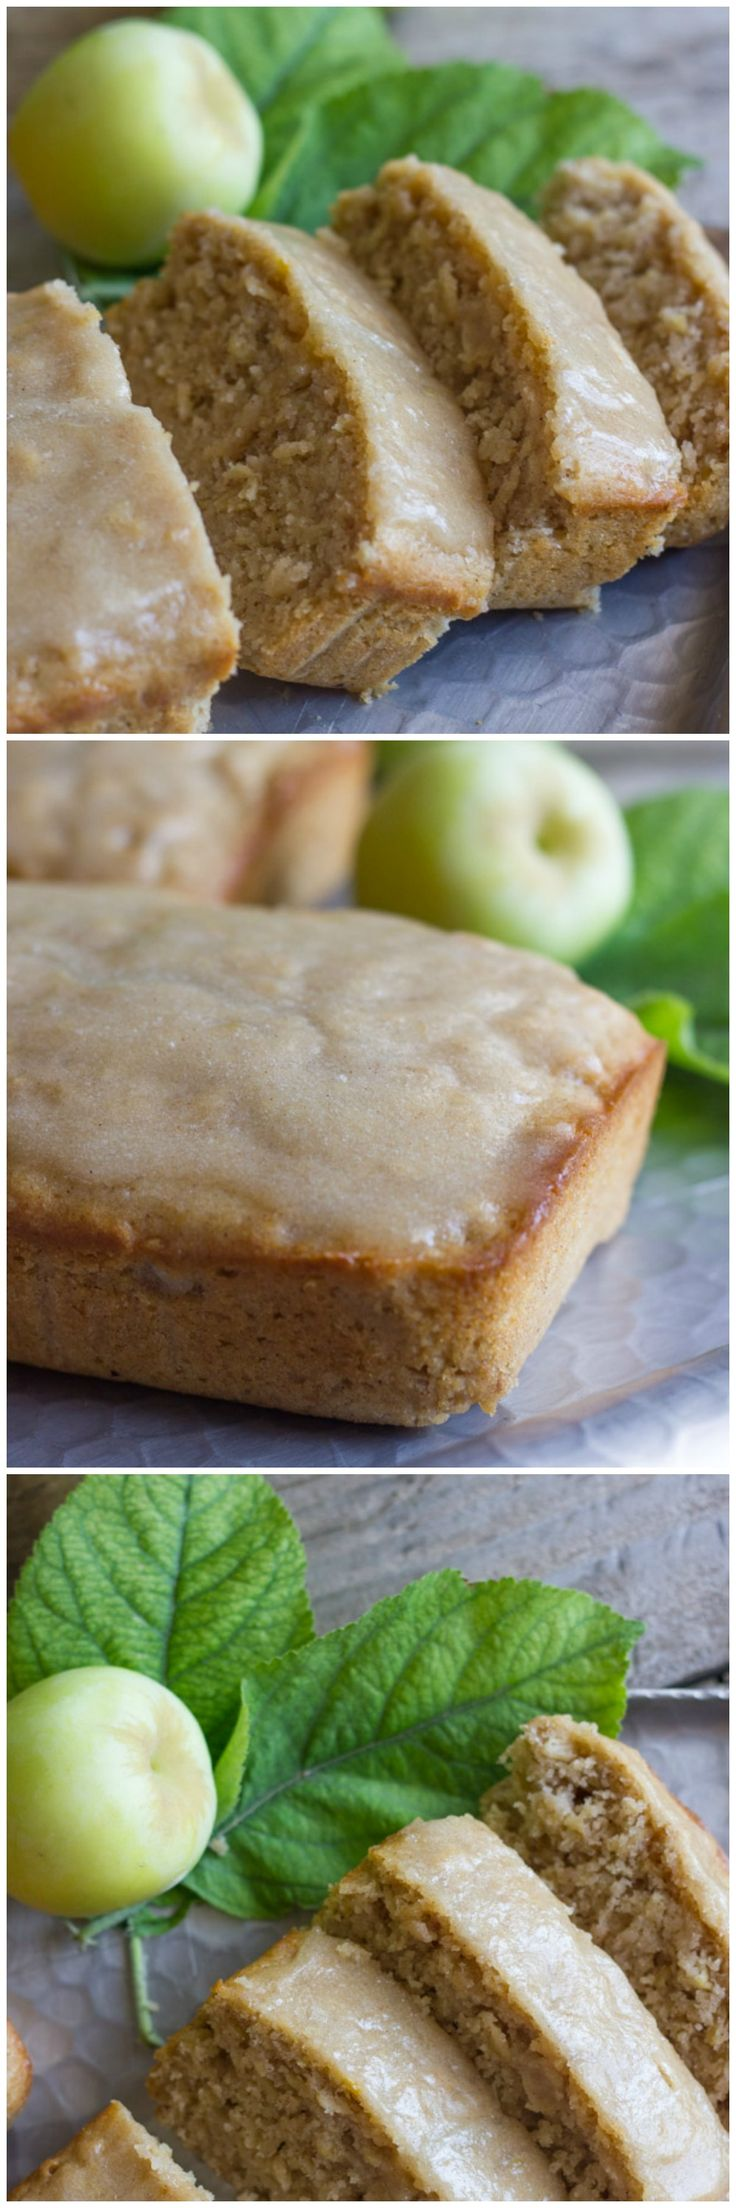 Apple Cinnamon Oatmeal Bread | Recipe | Nonfat greek yogurt, Apple ...